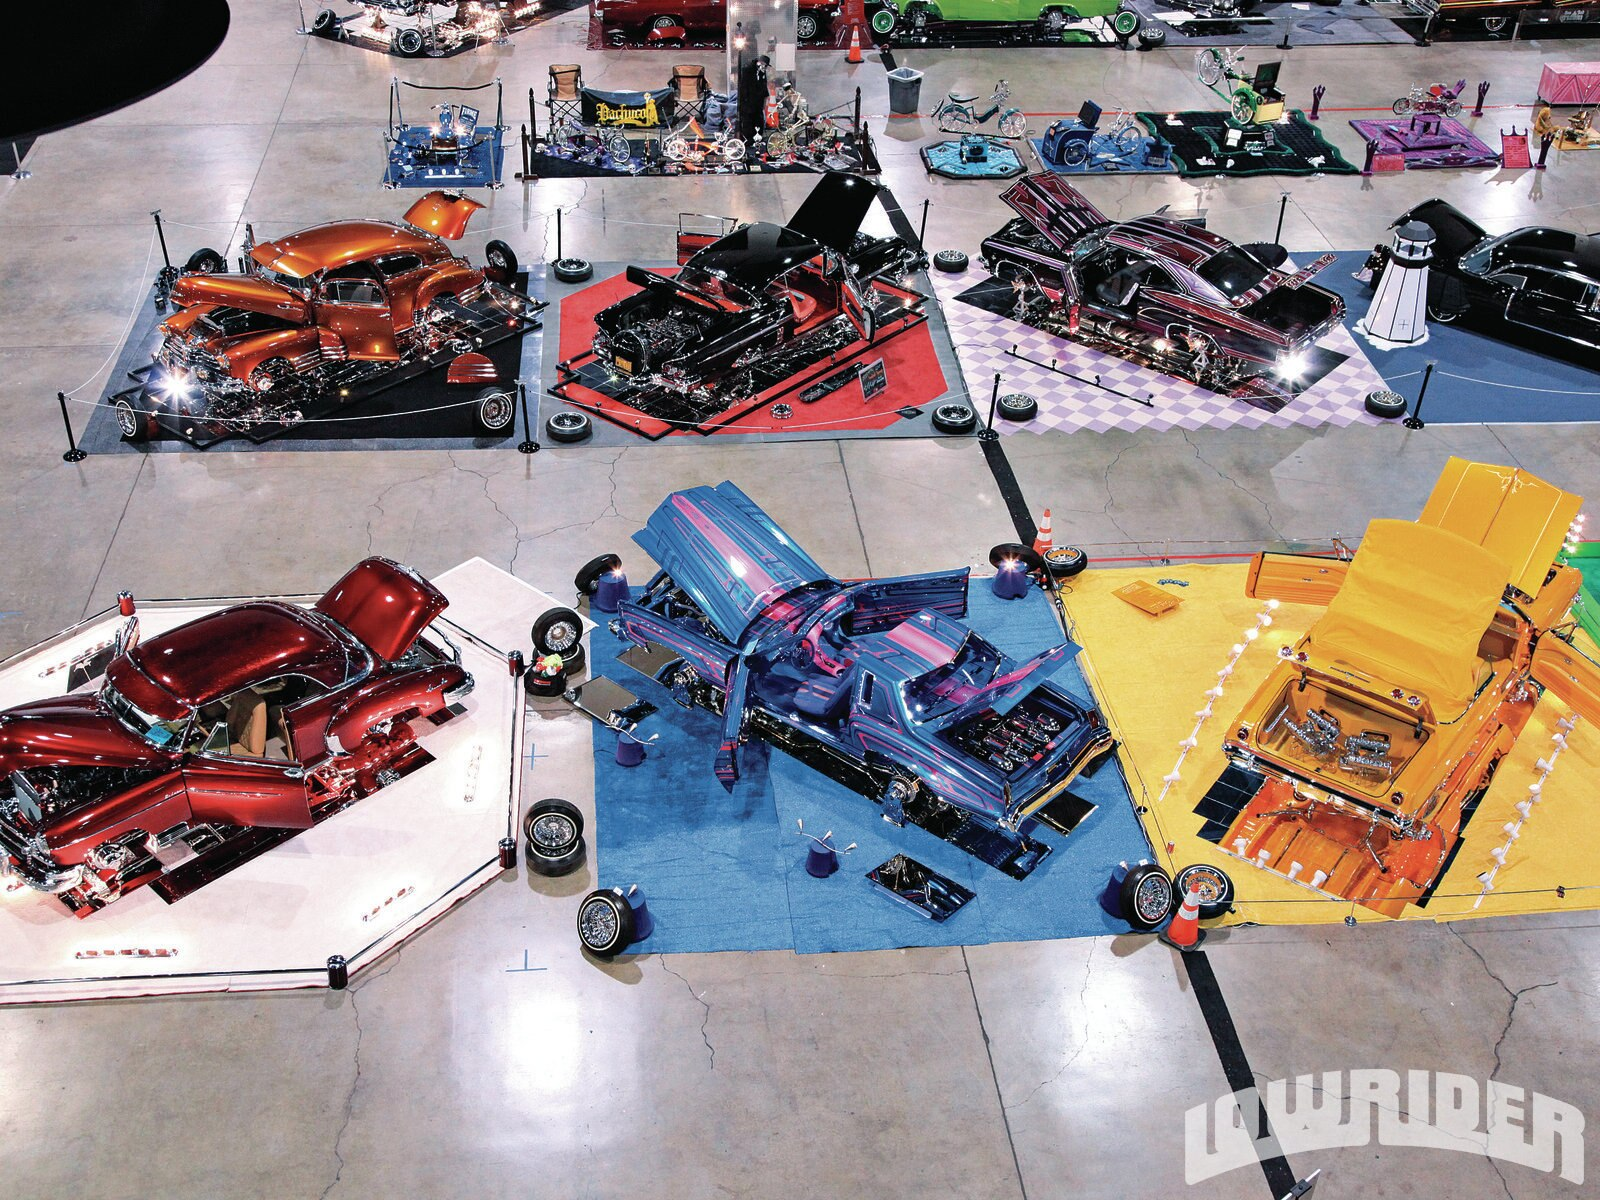 1304-lrmp-50-o-2012-las-vegas-anniversary-tour-cars-on-display-aerial-view1